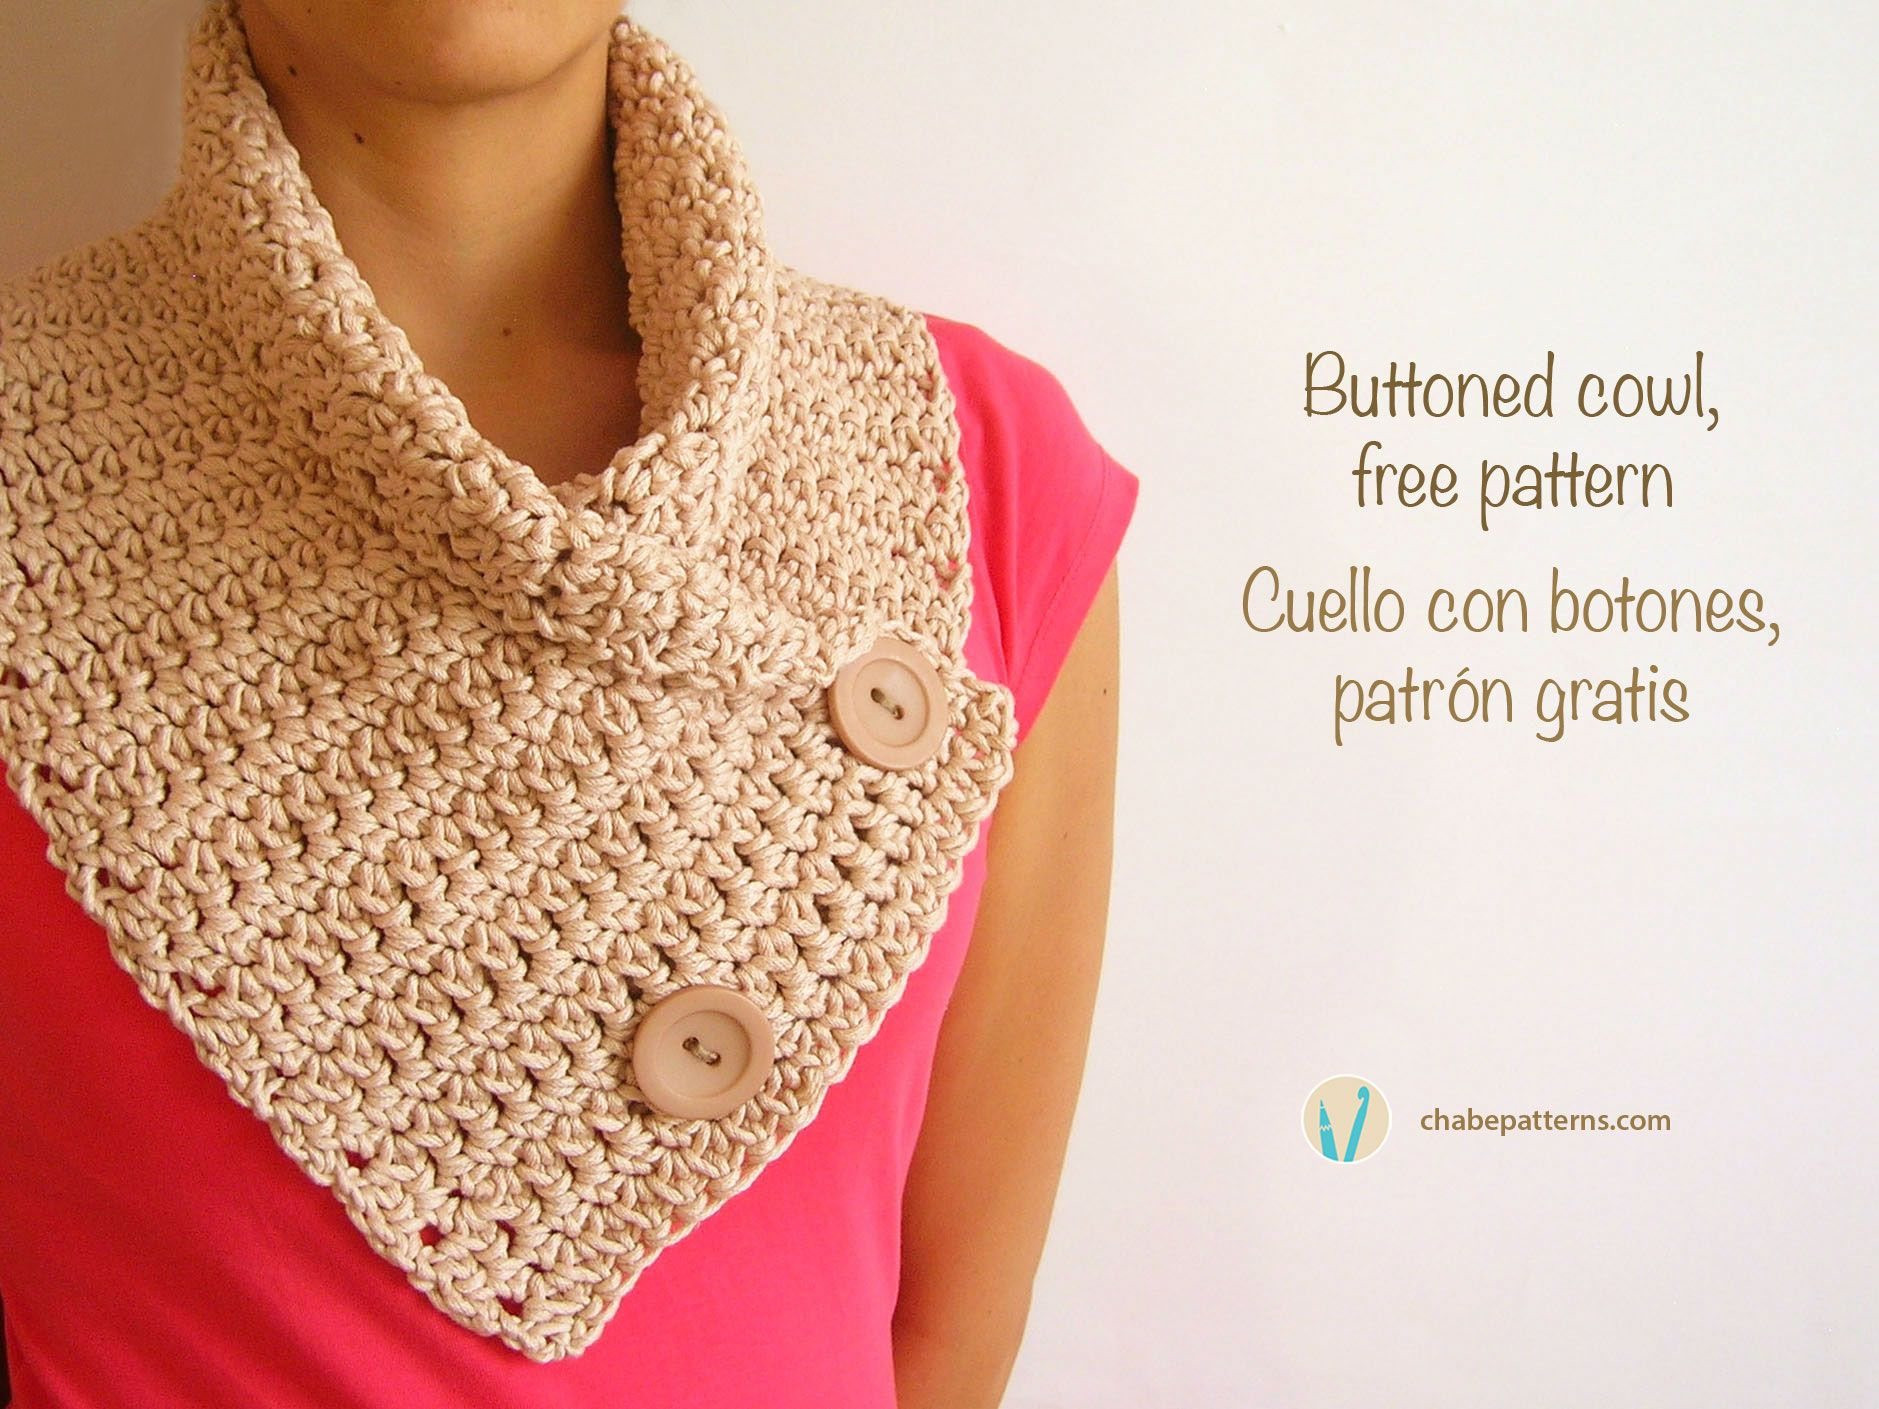 Buttoned cowl, free crochet pattern, written instructions and photo ...